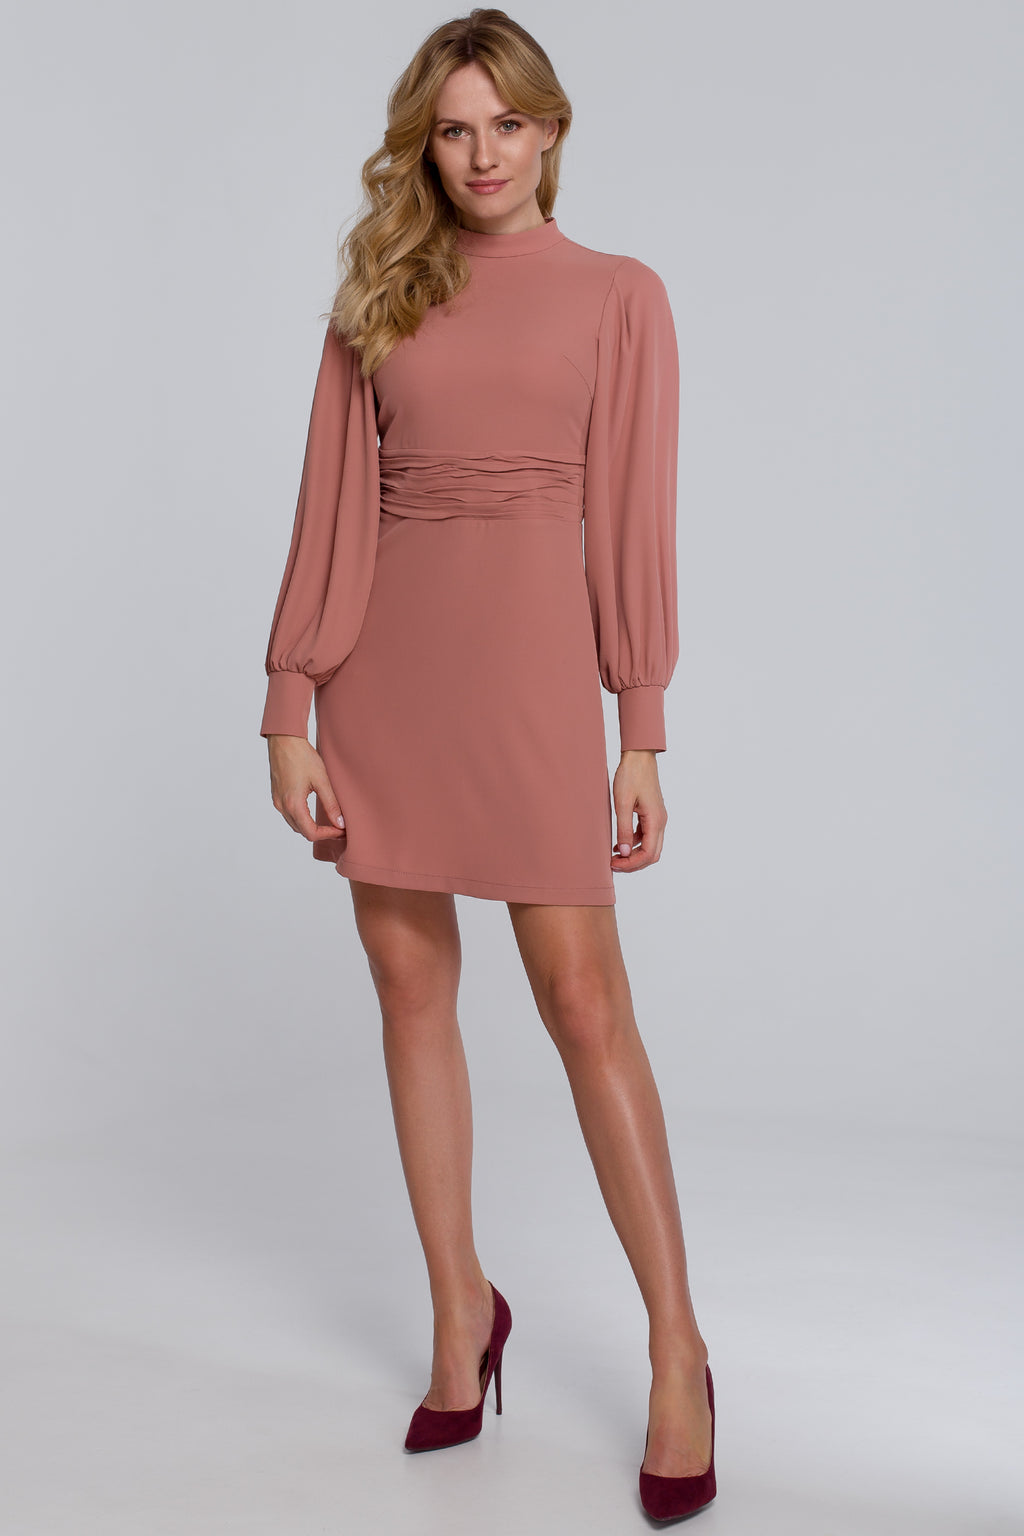 Dusty Rose Mini Dress With Bishop Sleeves - So Chic Boutique